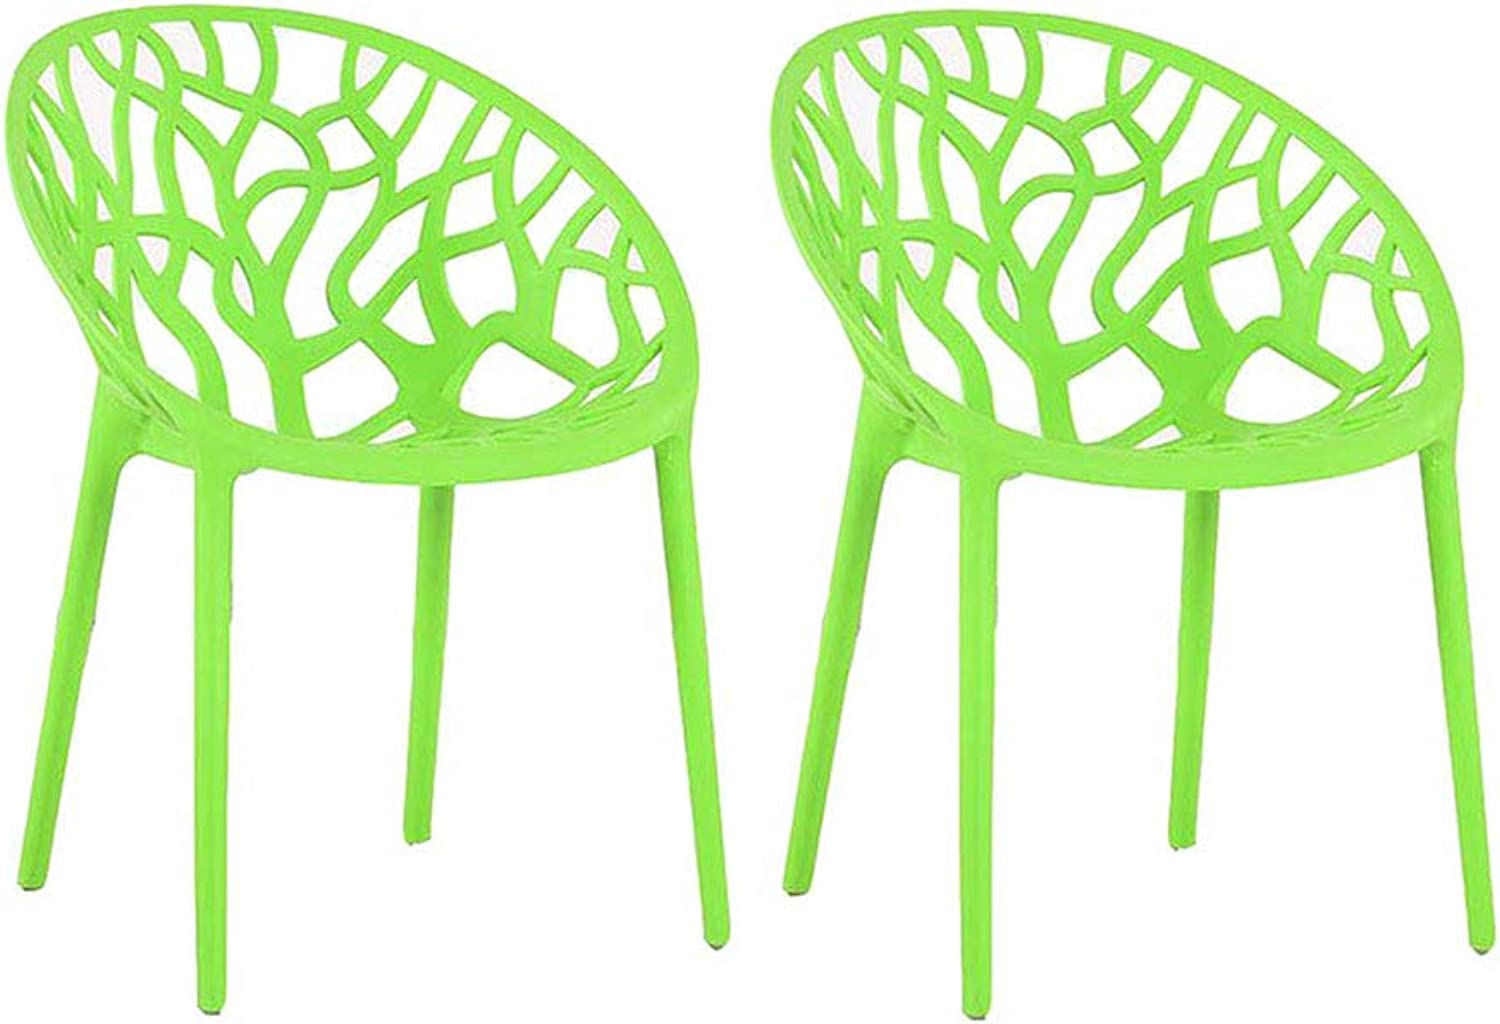 Plastic Dining Chair, Restaurant Modern Backrest Chair, Home Back Stool Leisure Chair - Package Includes  2 Chairs,Green